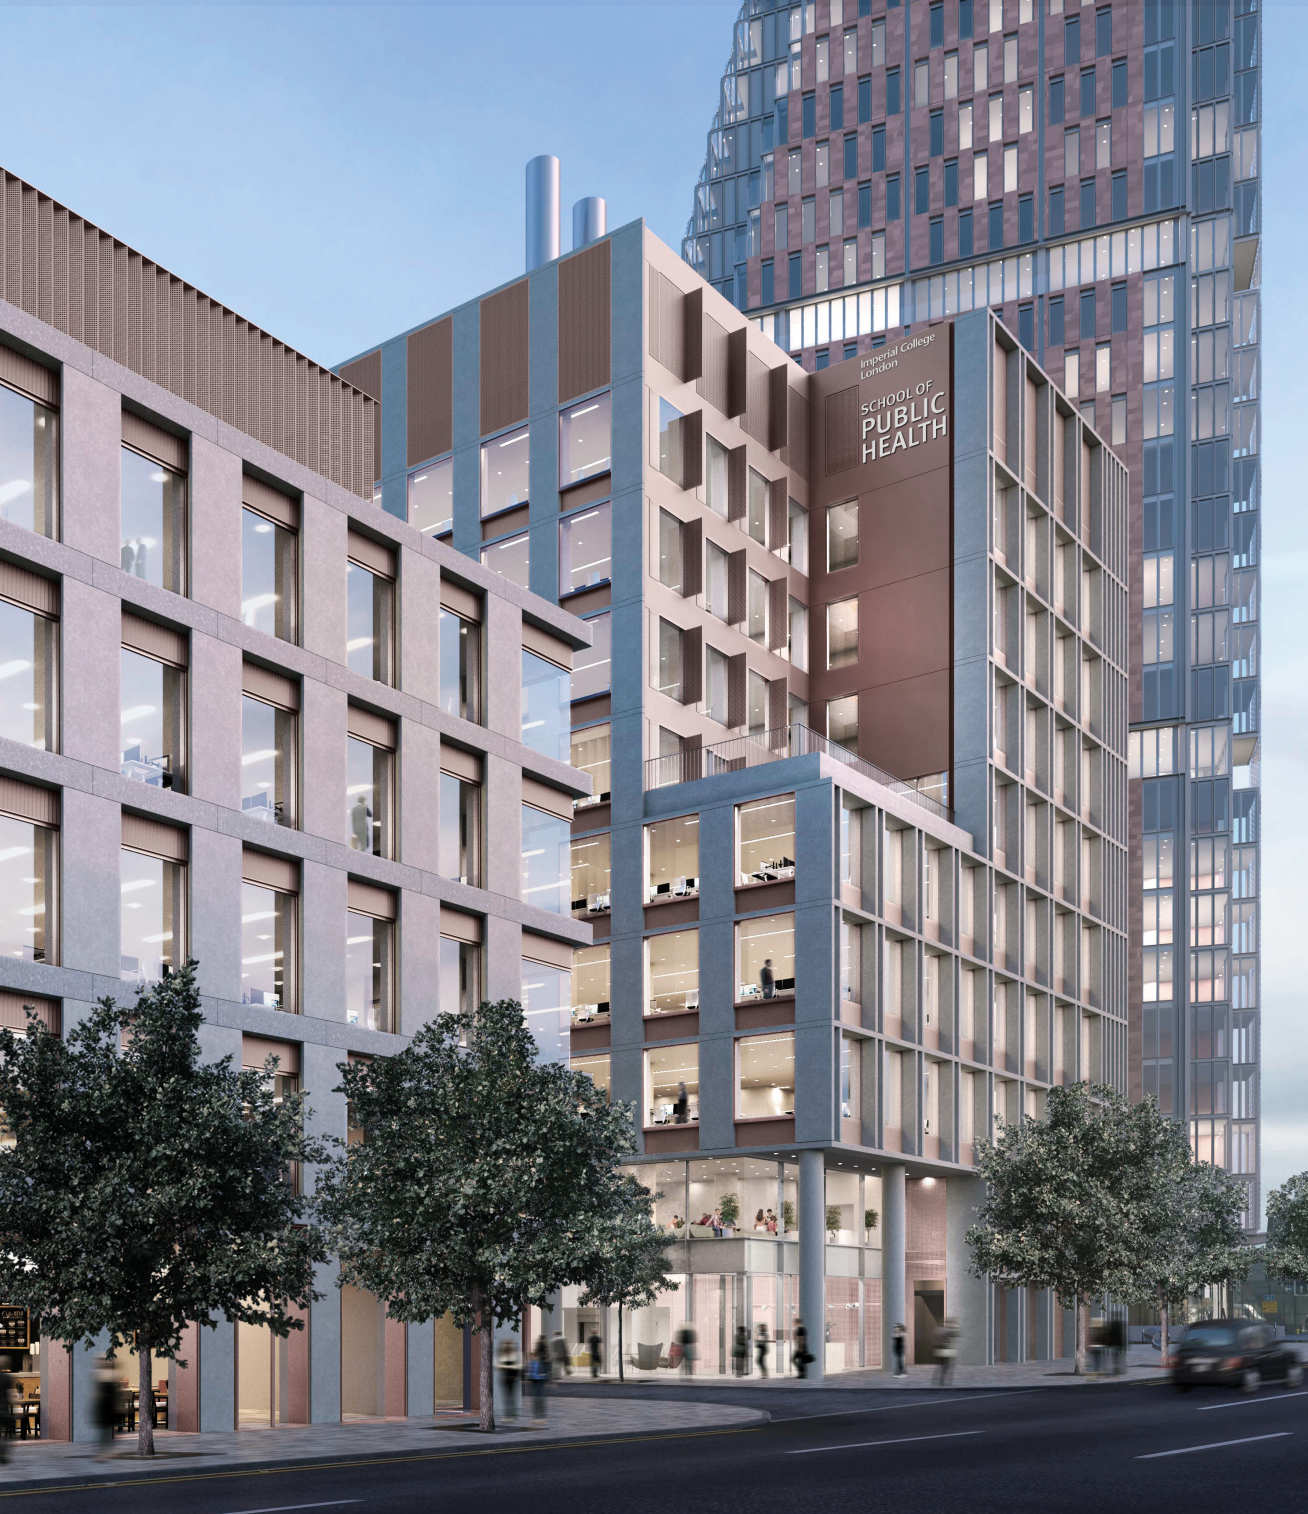 A CGI of the future School of Public Health from the perspective of Wood Lane